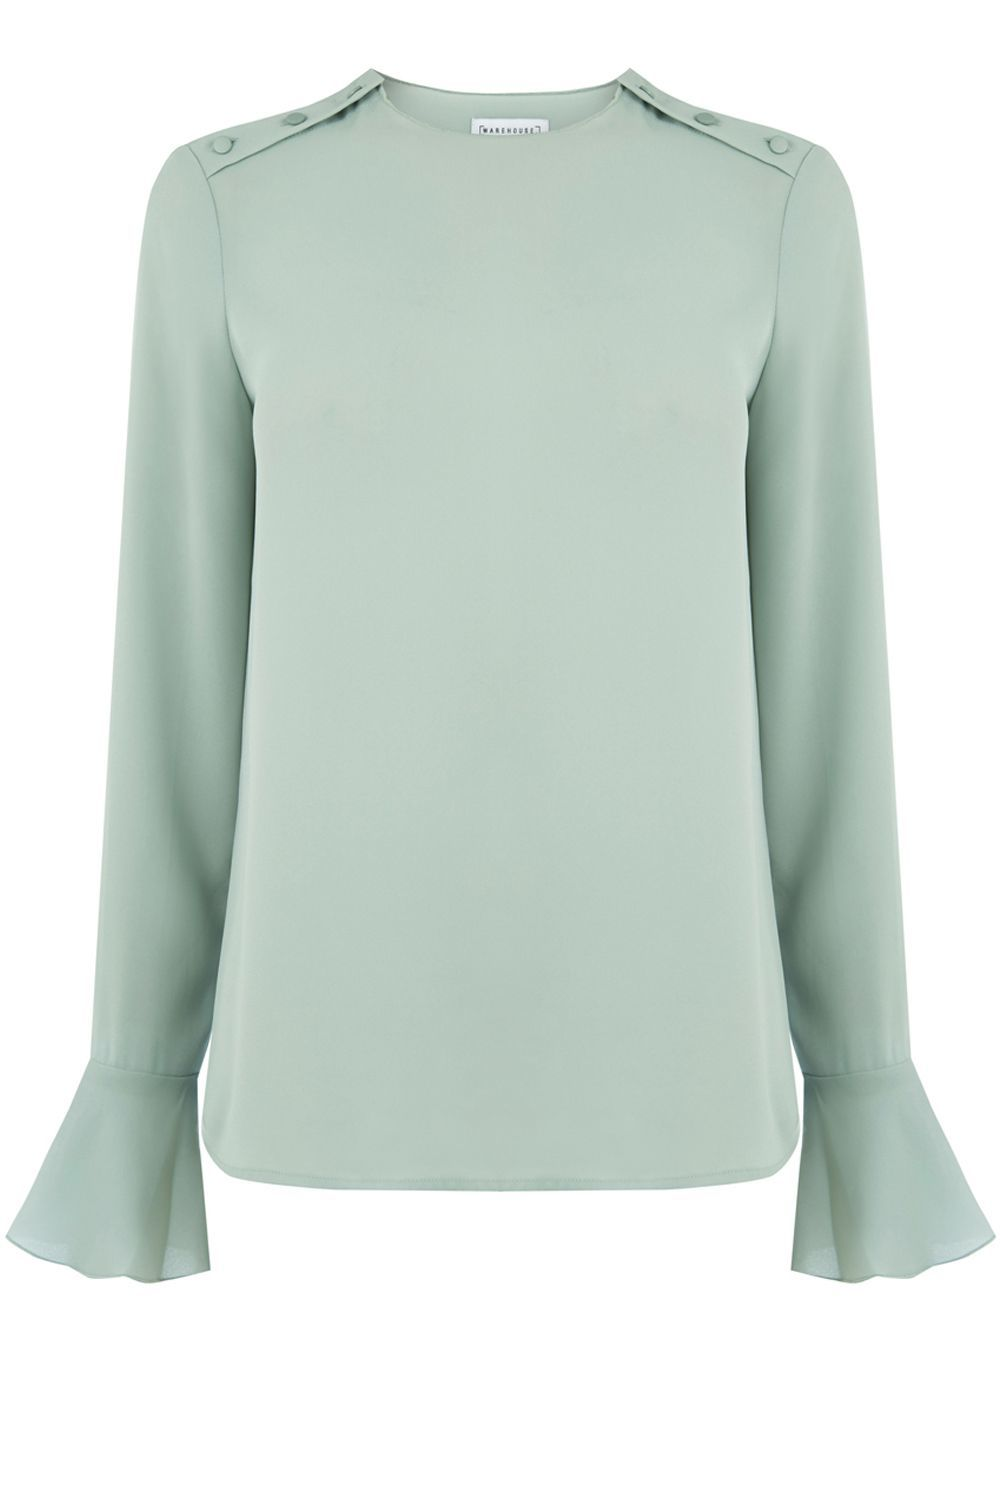 Button Shoulder Top, Mint - pattern: plain; style: blouse; sleeve style: volant; predominant colour: pistachio; occasions: casual, creative work; length: standard; fibres: polyester/polyamide - 100%; fit: straight cut; neckline: crew; sleeve length: long sleeve; texture group: crepes; pattern type: fabric; season: a/w 2016; wardrobe: highlight; trends: statement sleeves